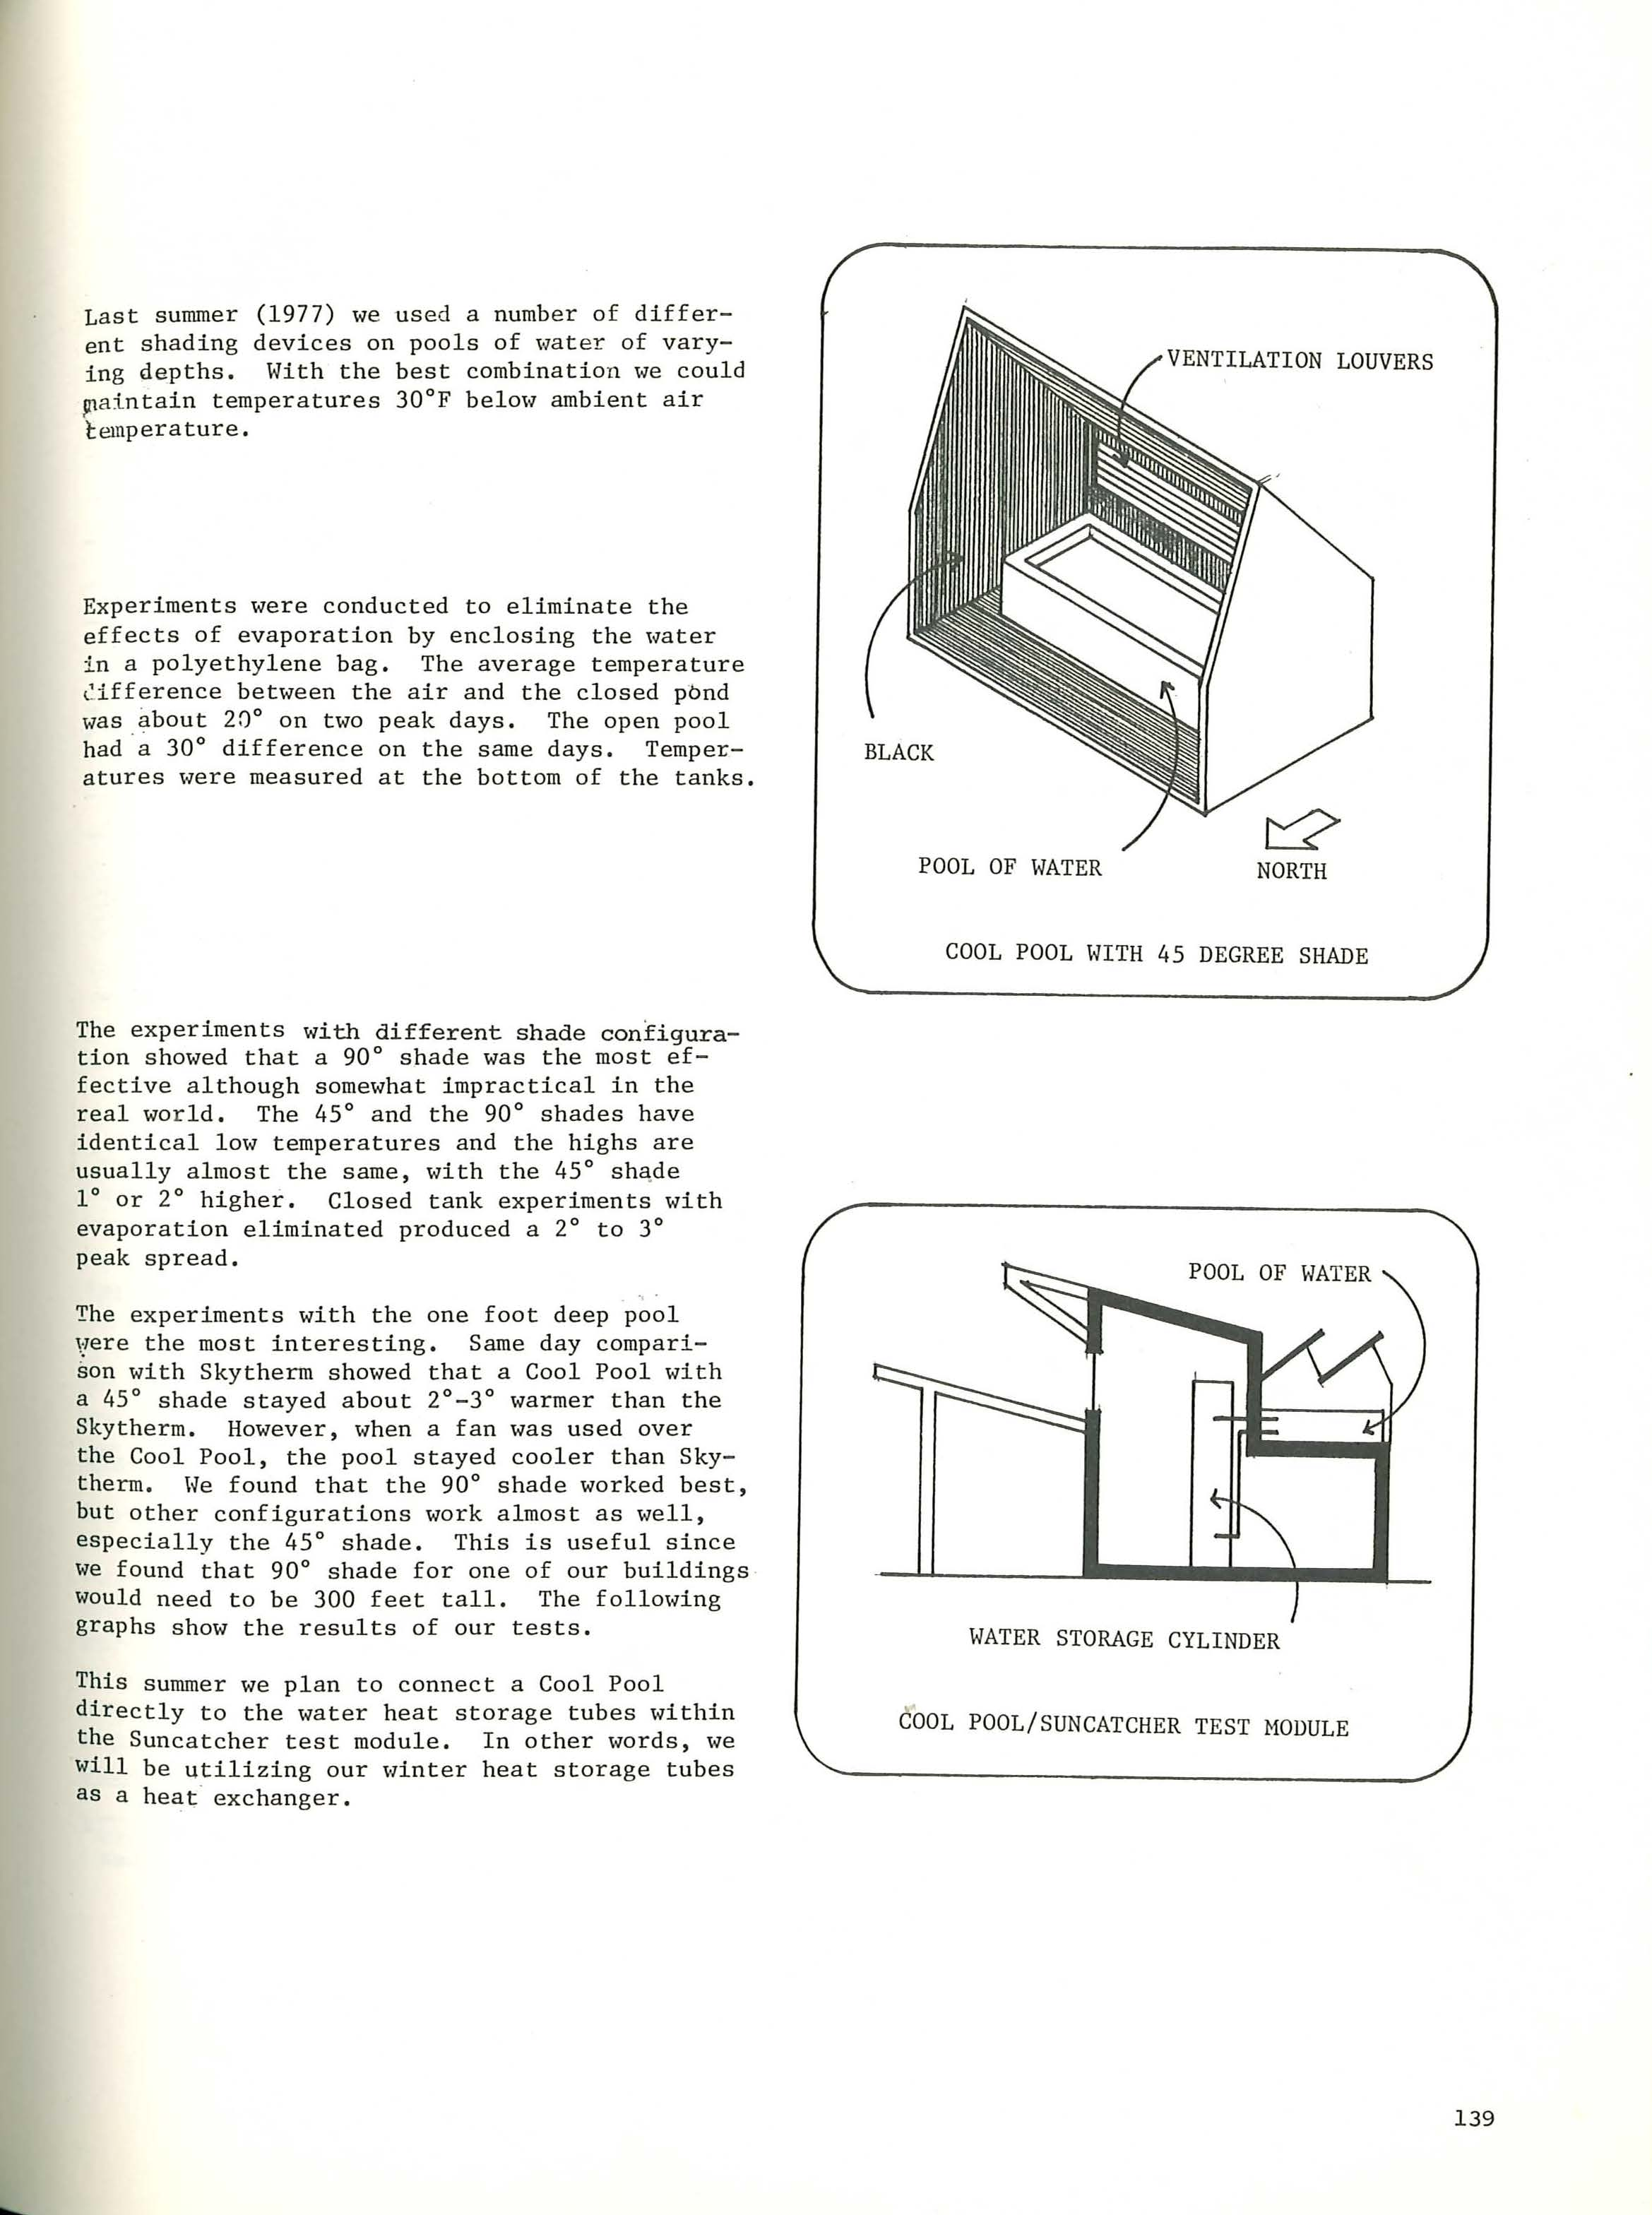 passive solar_proceedings of the 2nd national passive solar conference_1978_Page_5.jpg